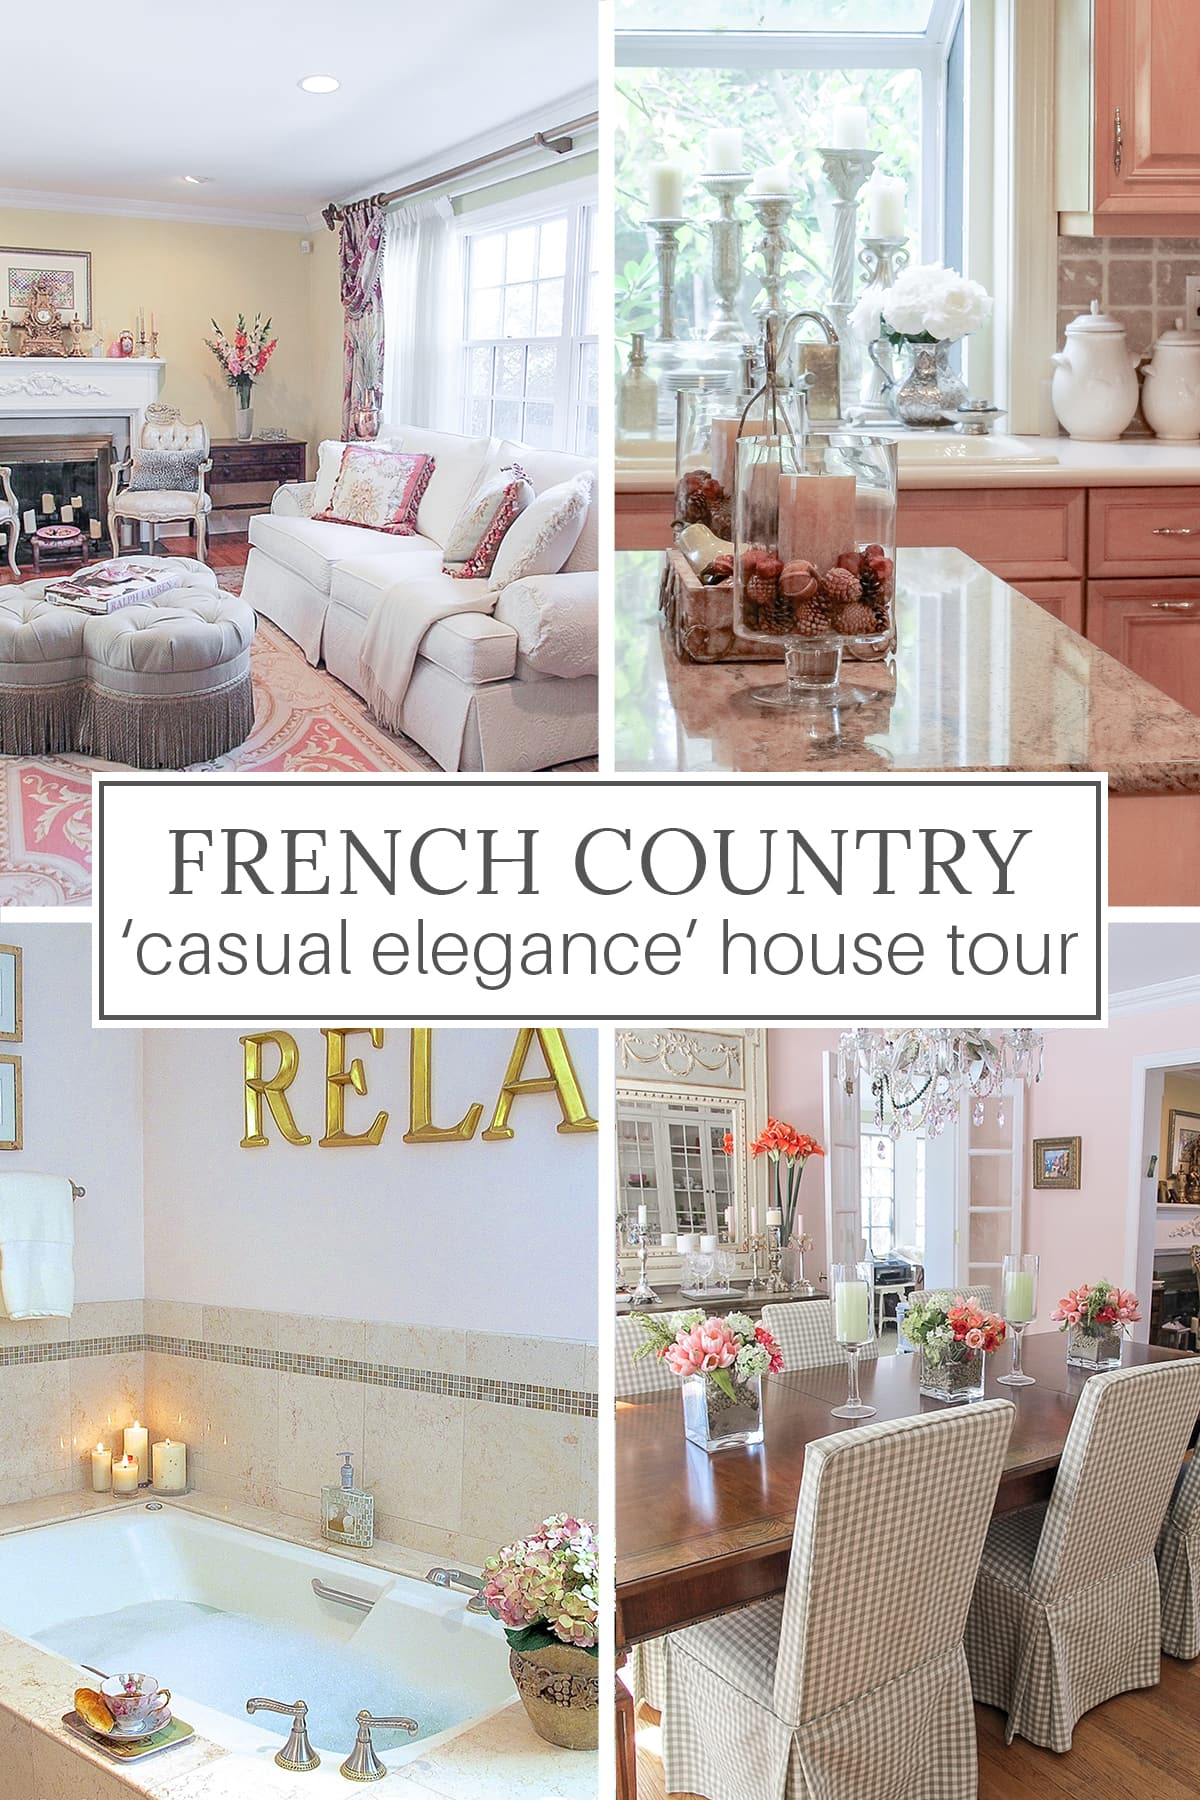 French Country house tour